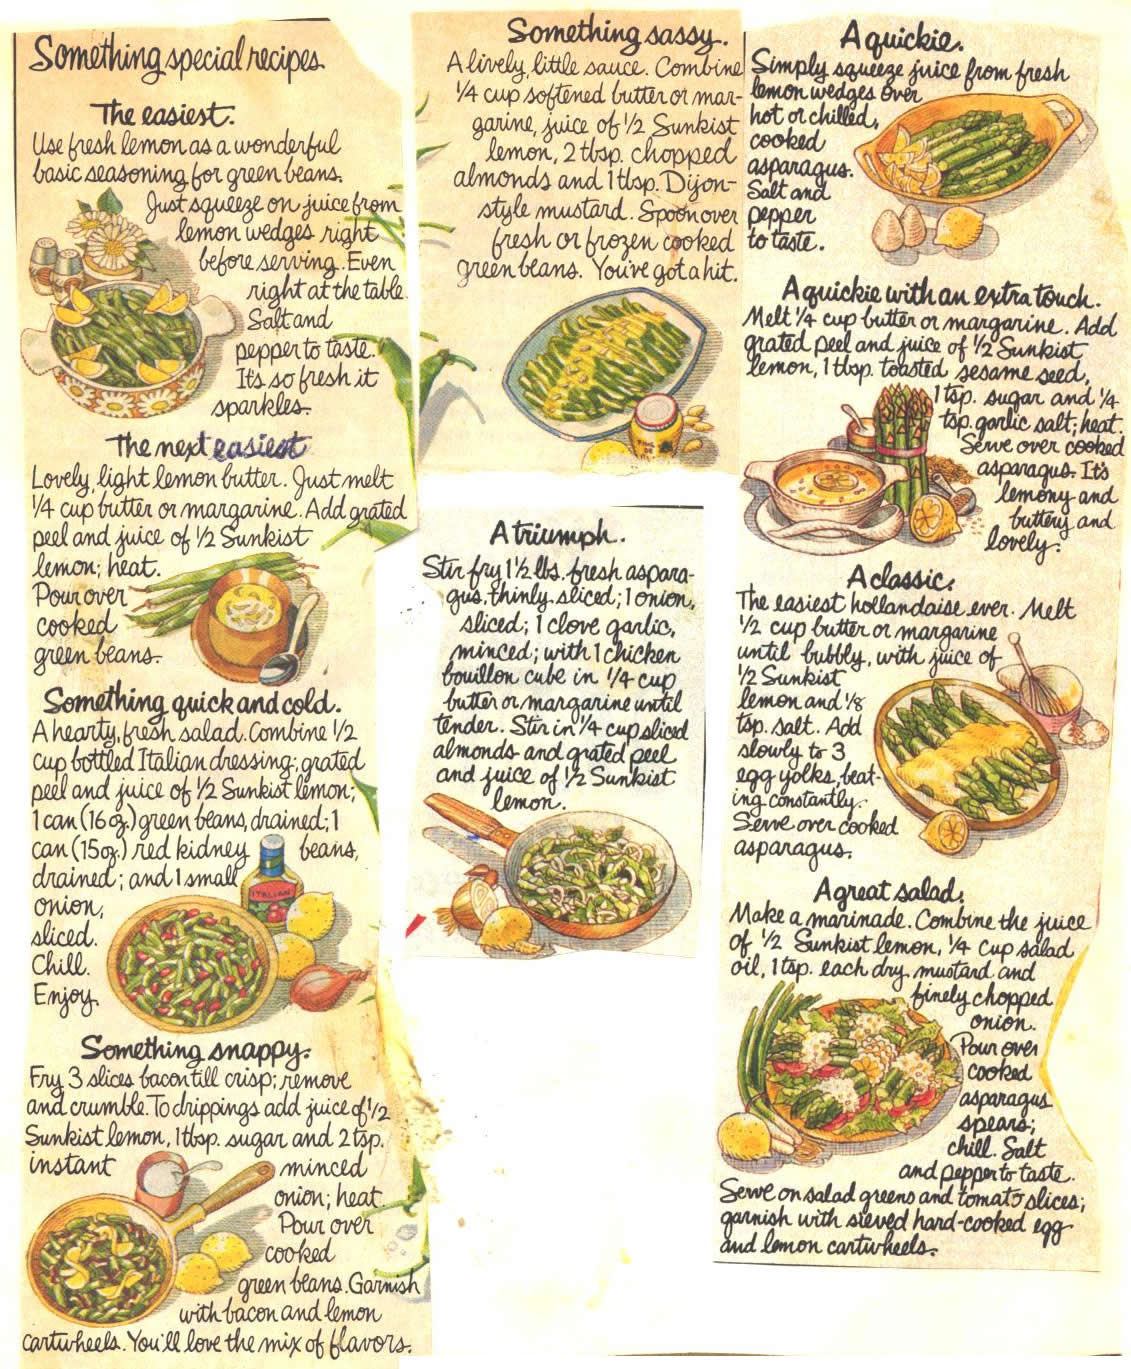 something-special-recipes